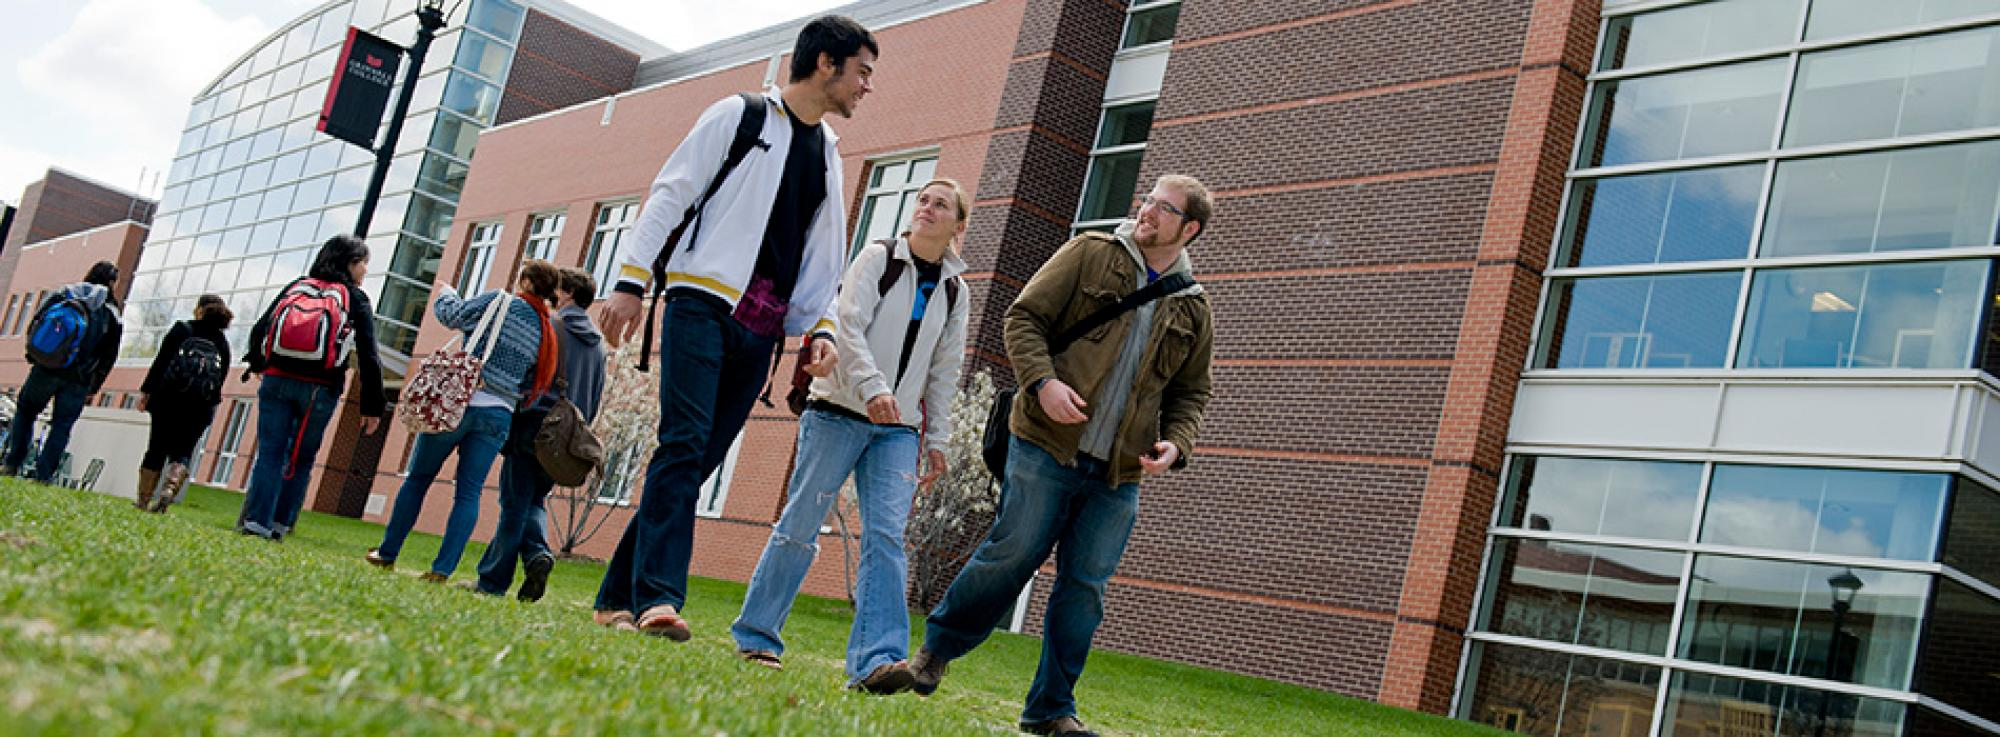 Students walking in front of Noyce Science Center